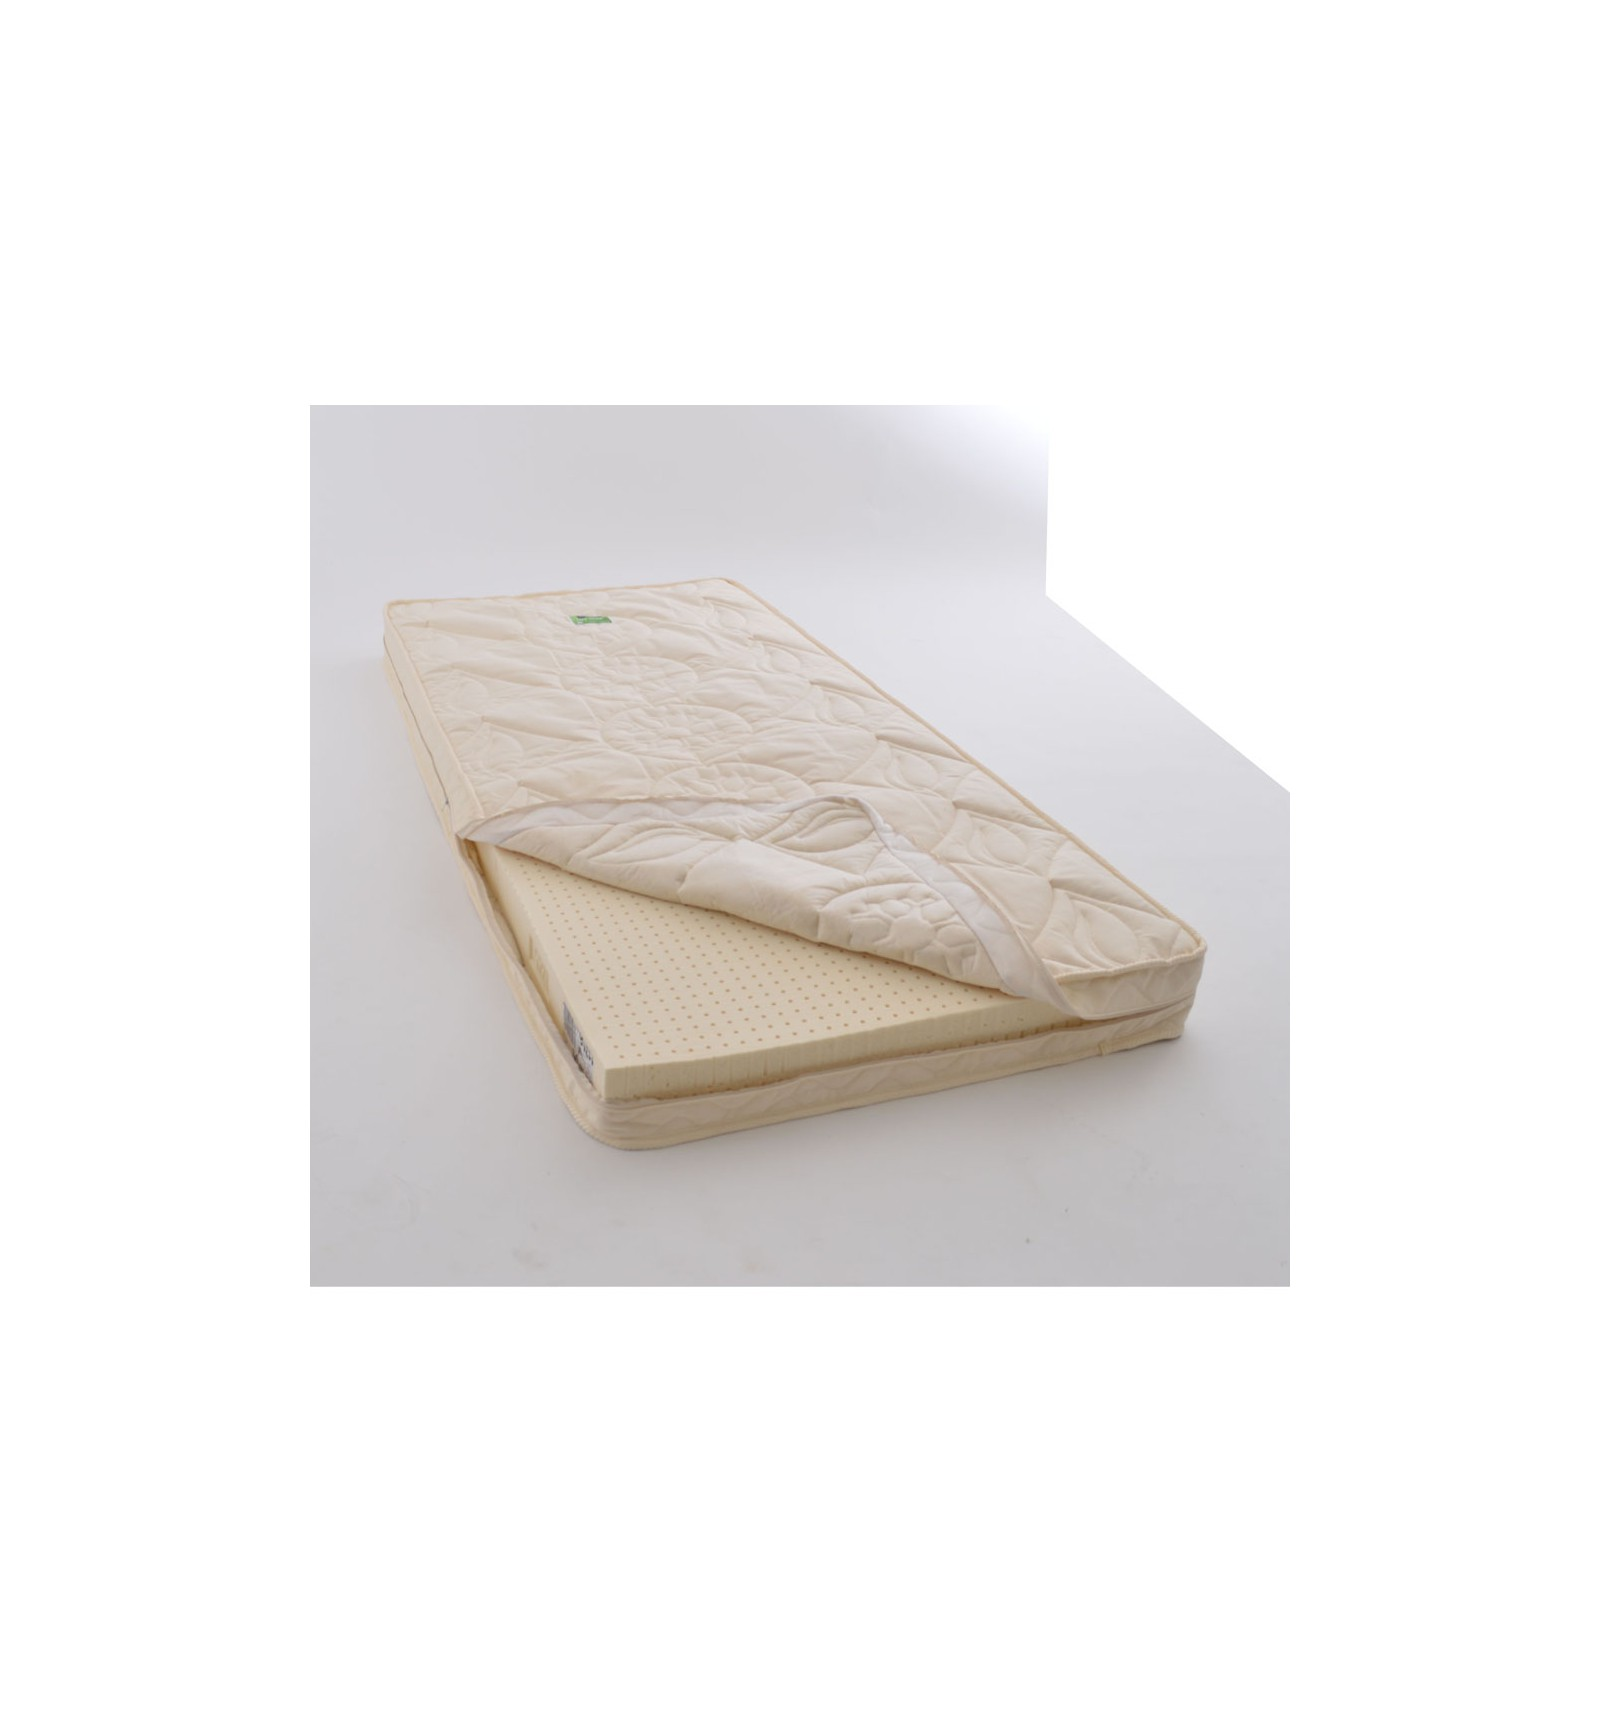 Matelas Naturel Matelas Bébé En Latex Naturel Déhoussable